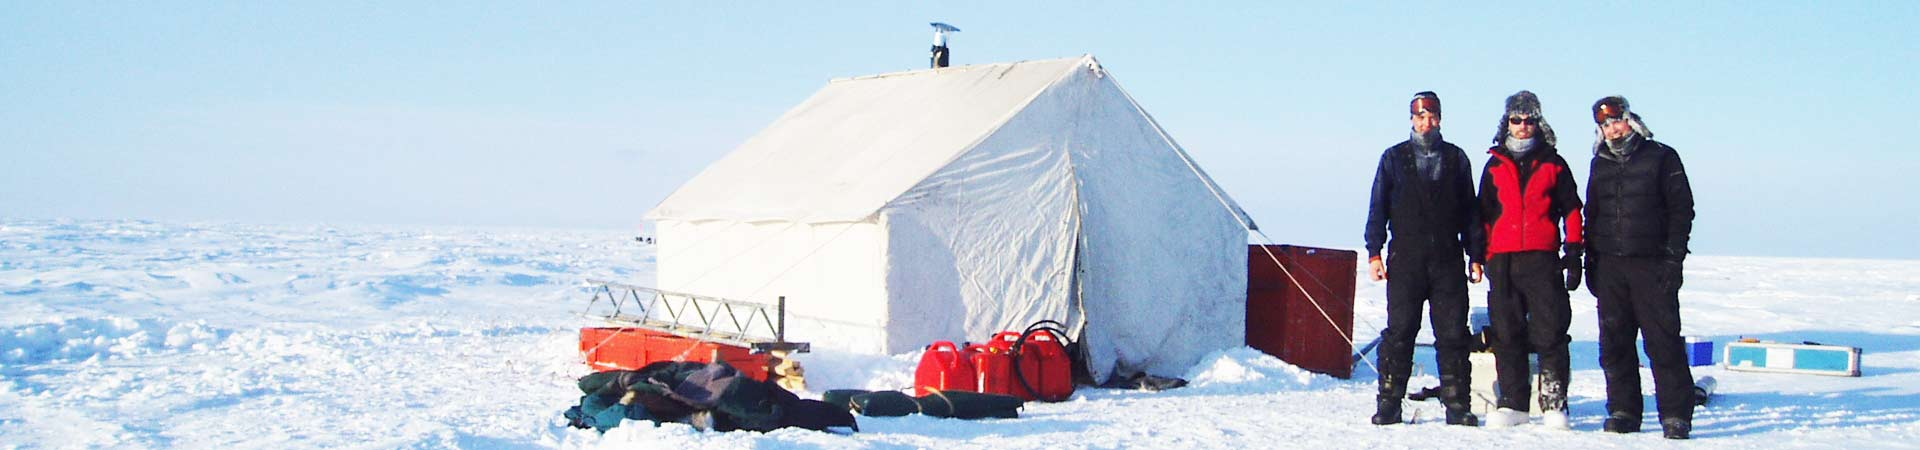 Photo of group of researchers outside a tent in the polar regions, ready to go sampling